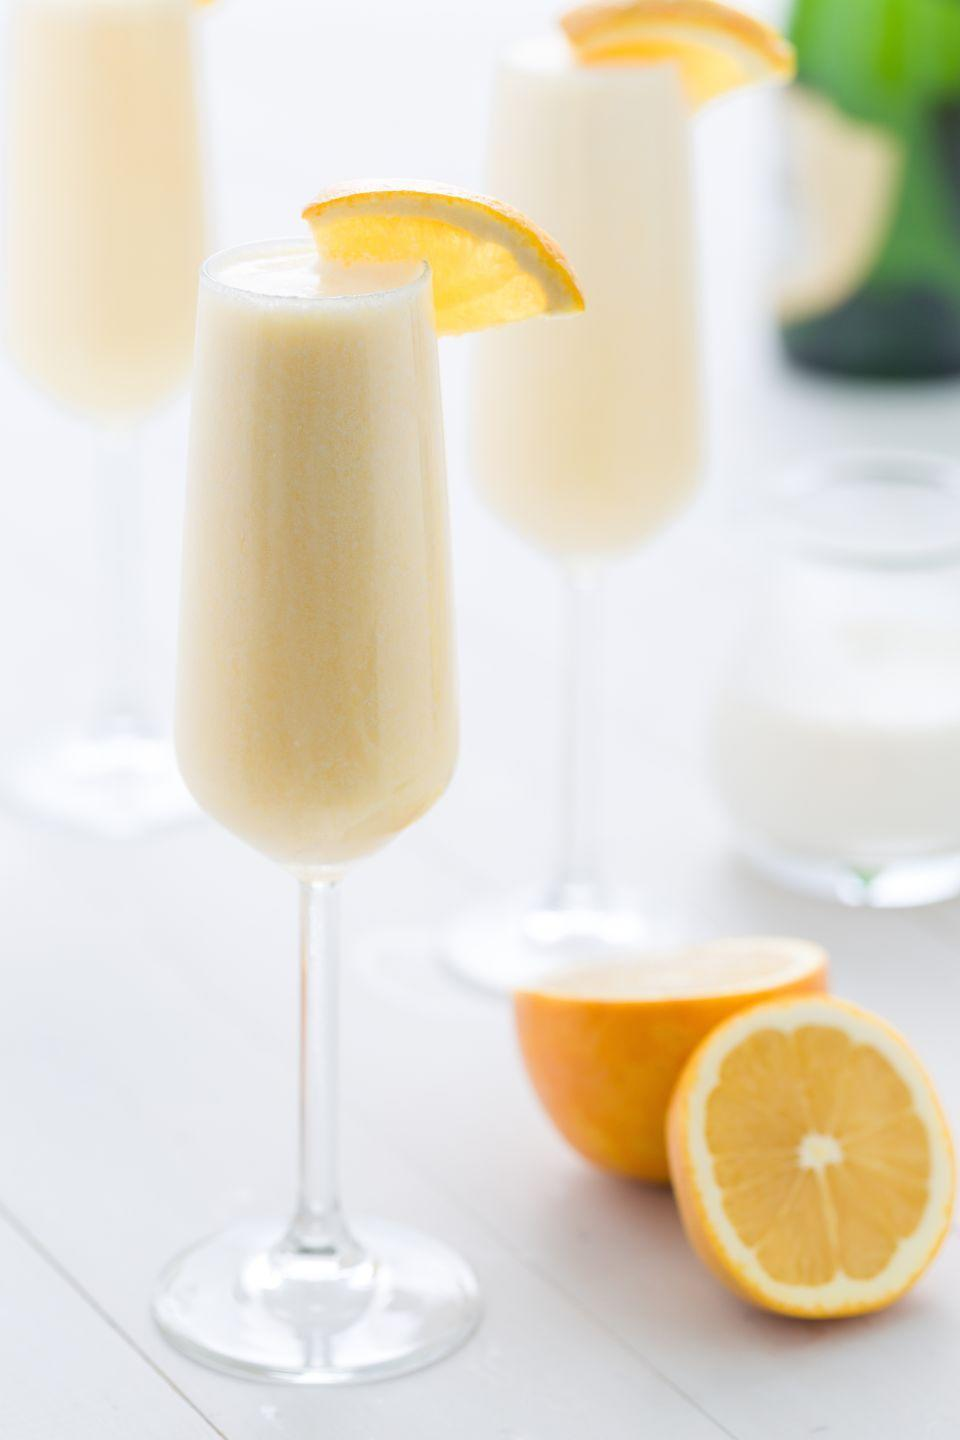 """<p>You know peaches 'n cream are a delicious pair, but have you tried orange juice and cream? Together they taste just like a creamsicle.</p><p>Get the recipe from <a href=""""https://www.delish.com/cooking/recipe-ideas/recipes/a46969/orange-creamsicle-mimosas-recipe/"""" rel=""""nofollow noopener"""" target=""""_blank"""" data-ylk=""""slk:Delish"""" class=""""link rapid-noclick-resp"""">Delish</a>. </p>"""